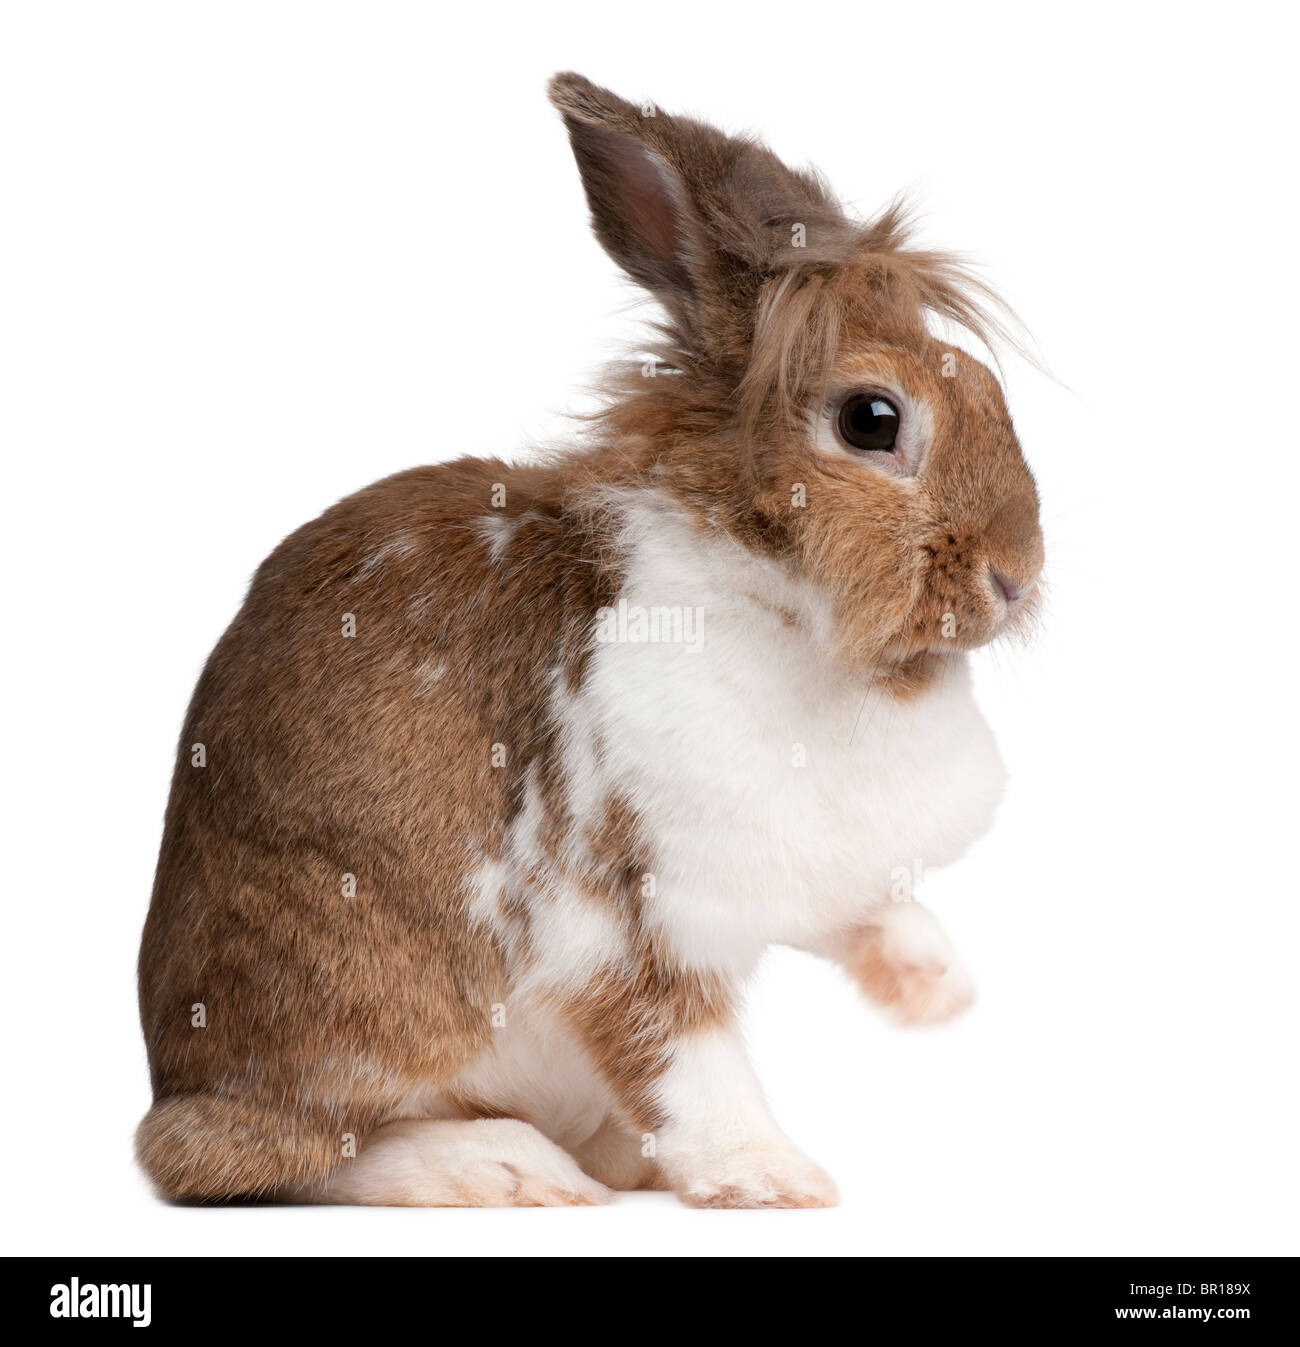 Portrait d'un lapin de garenne, Oryctolagus cuniculus, in front of white background Photo Stock